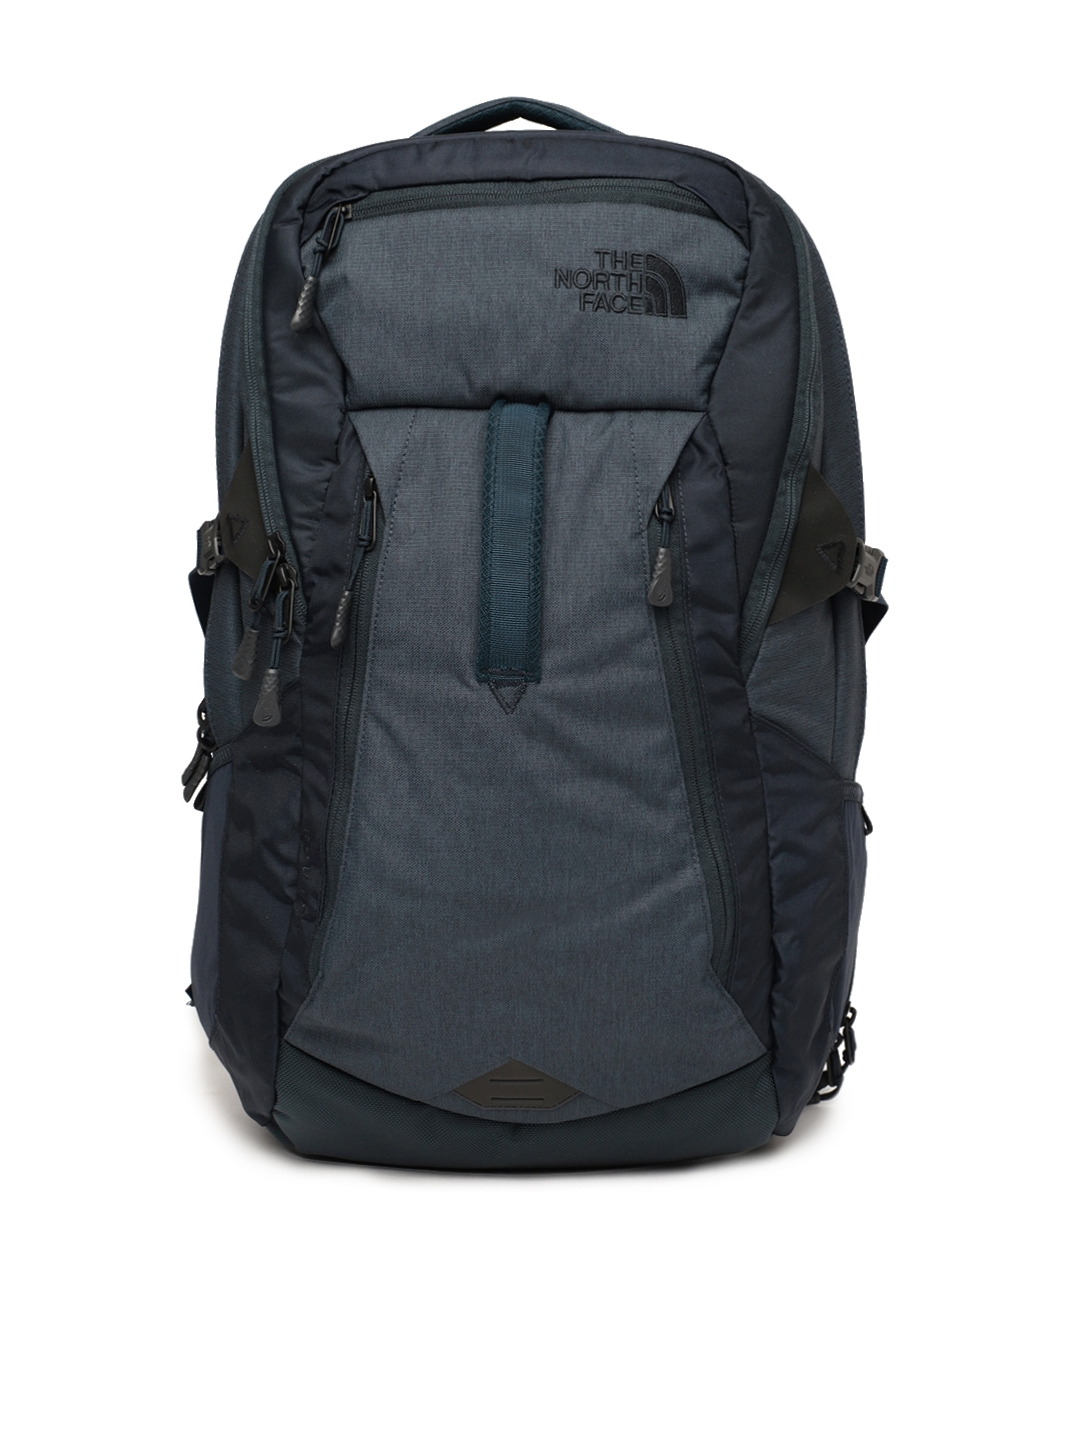 5b378211ebdb Buy The North Face Unisex Navy Blue Solid ROUTER Backpack ...